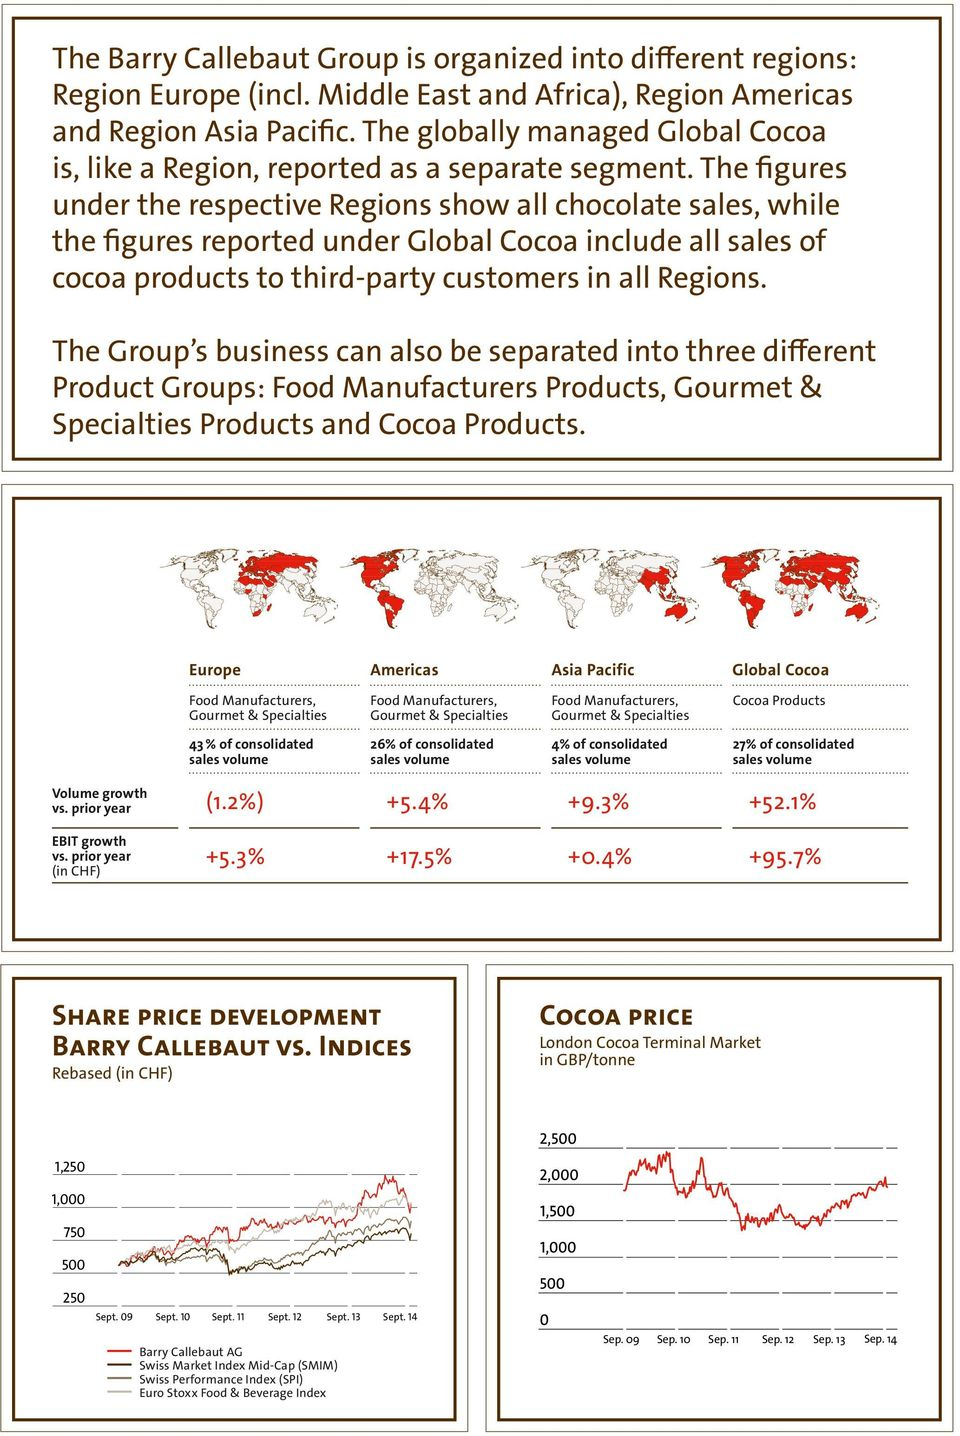 The figures under the respective Regions show all chocolate sales, while the figures reported under Global Cocoa include all sales of cocoa products to third-party customers in all Regions.